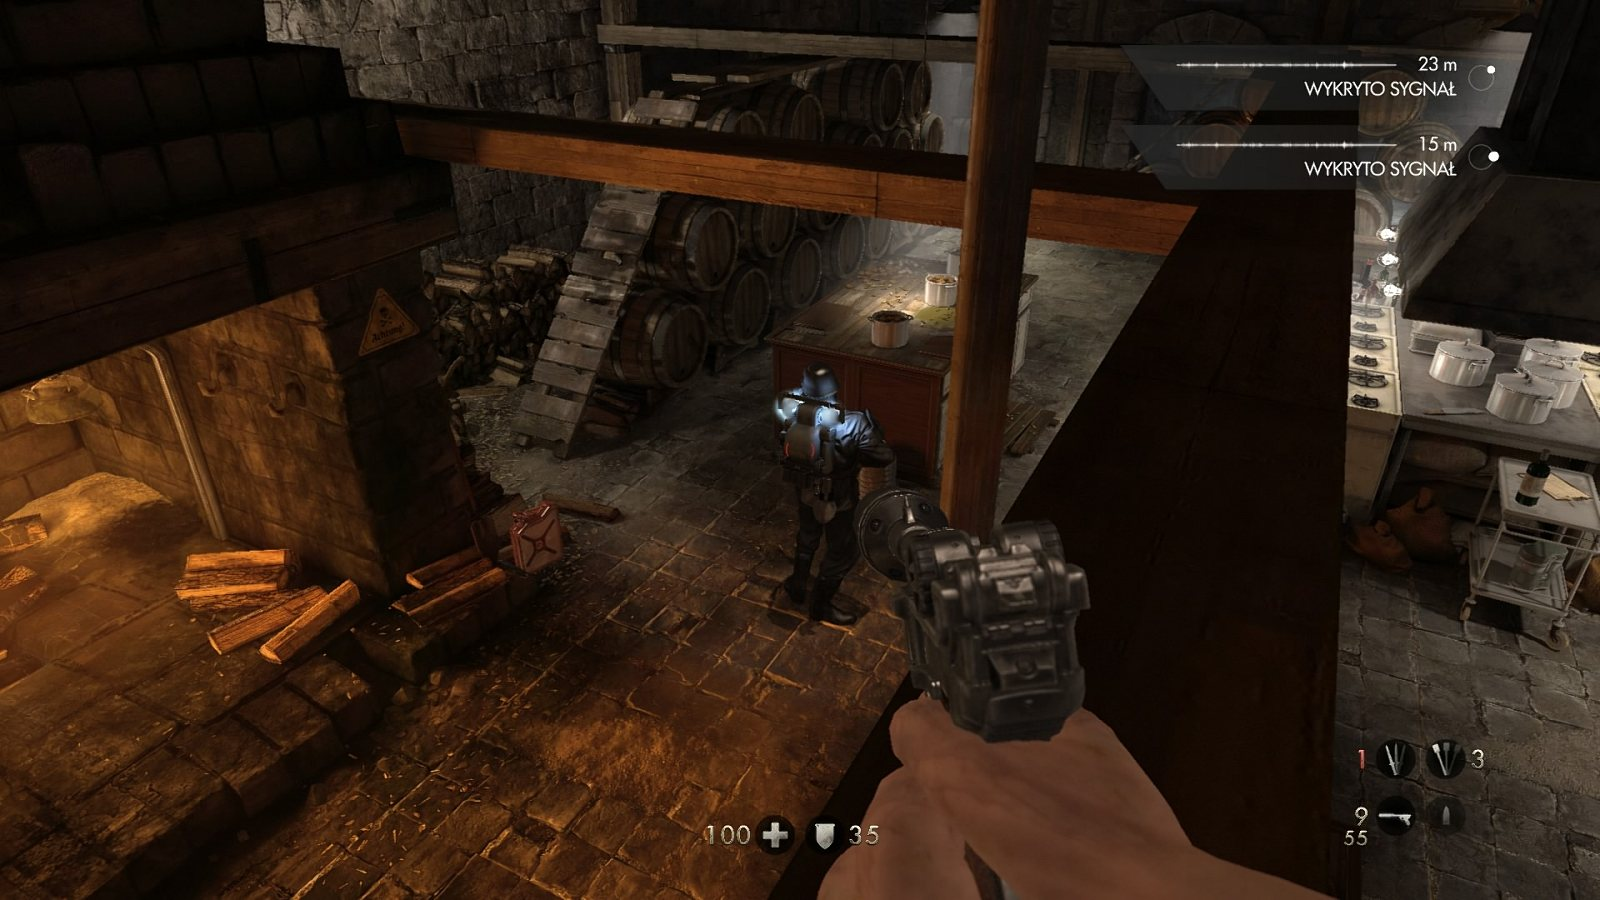 wolfenstein_r___the_old_blood_20150516193810.jpg